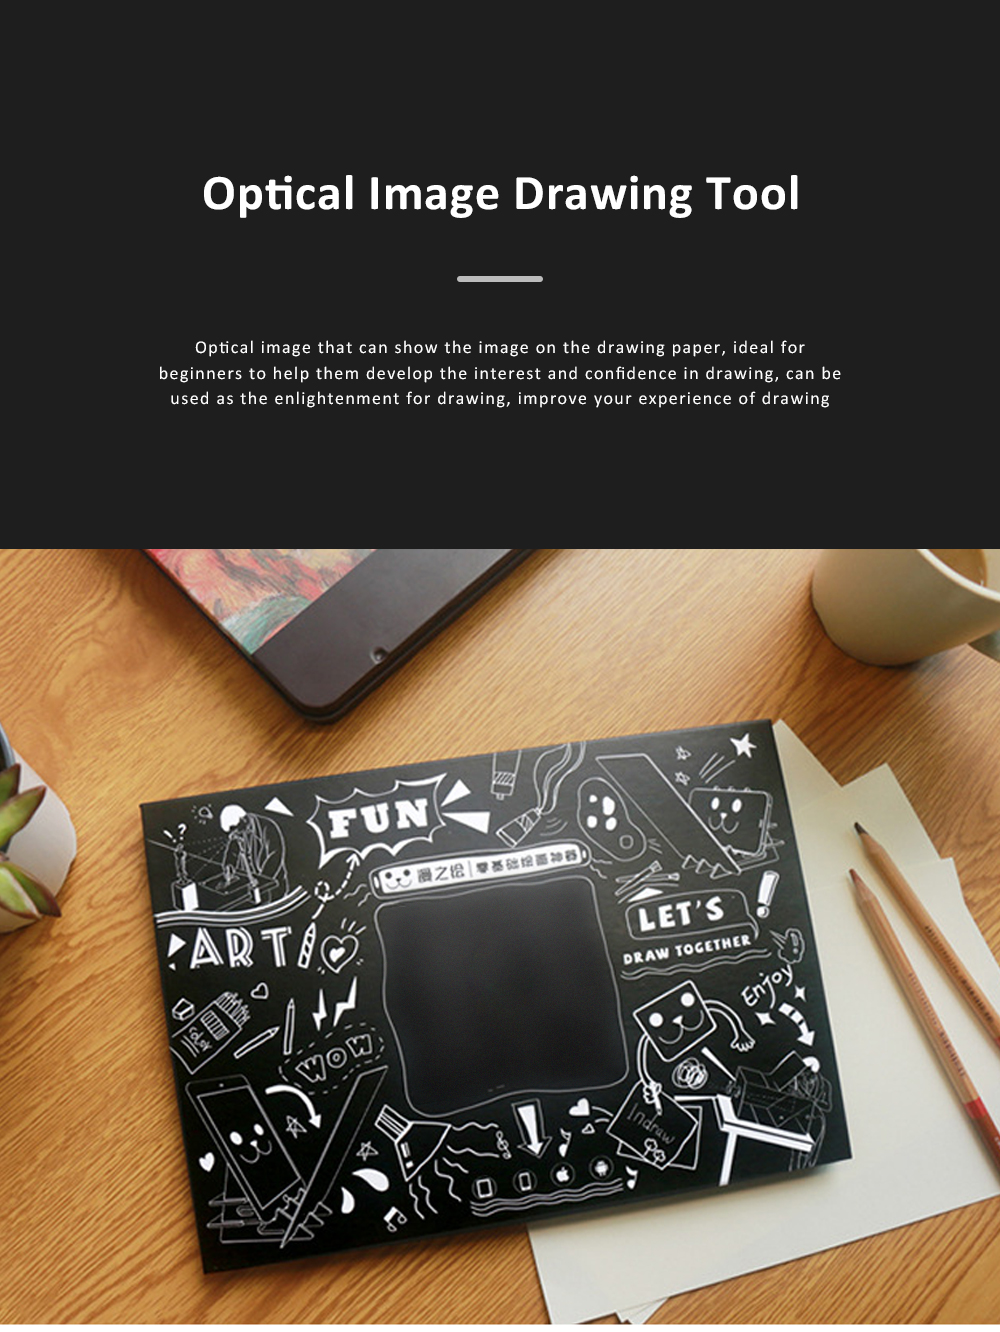 Optical Image Drawing Tool Set for Beginners Optical Copying Facsimile Imitation Glass Mirror with APP Support 0